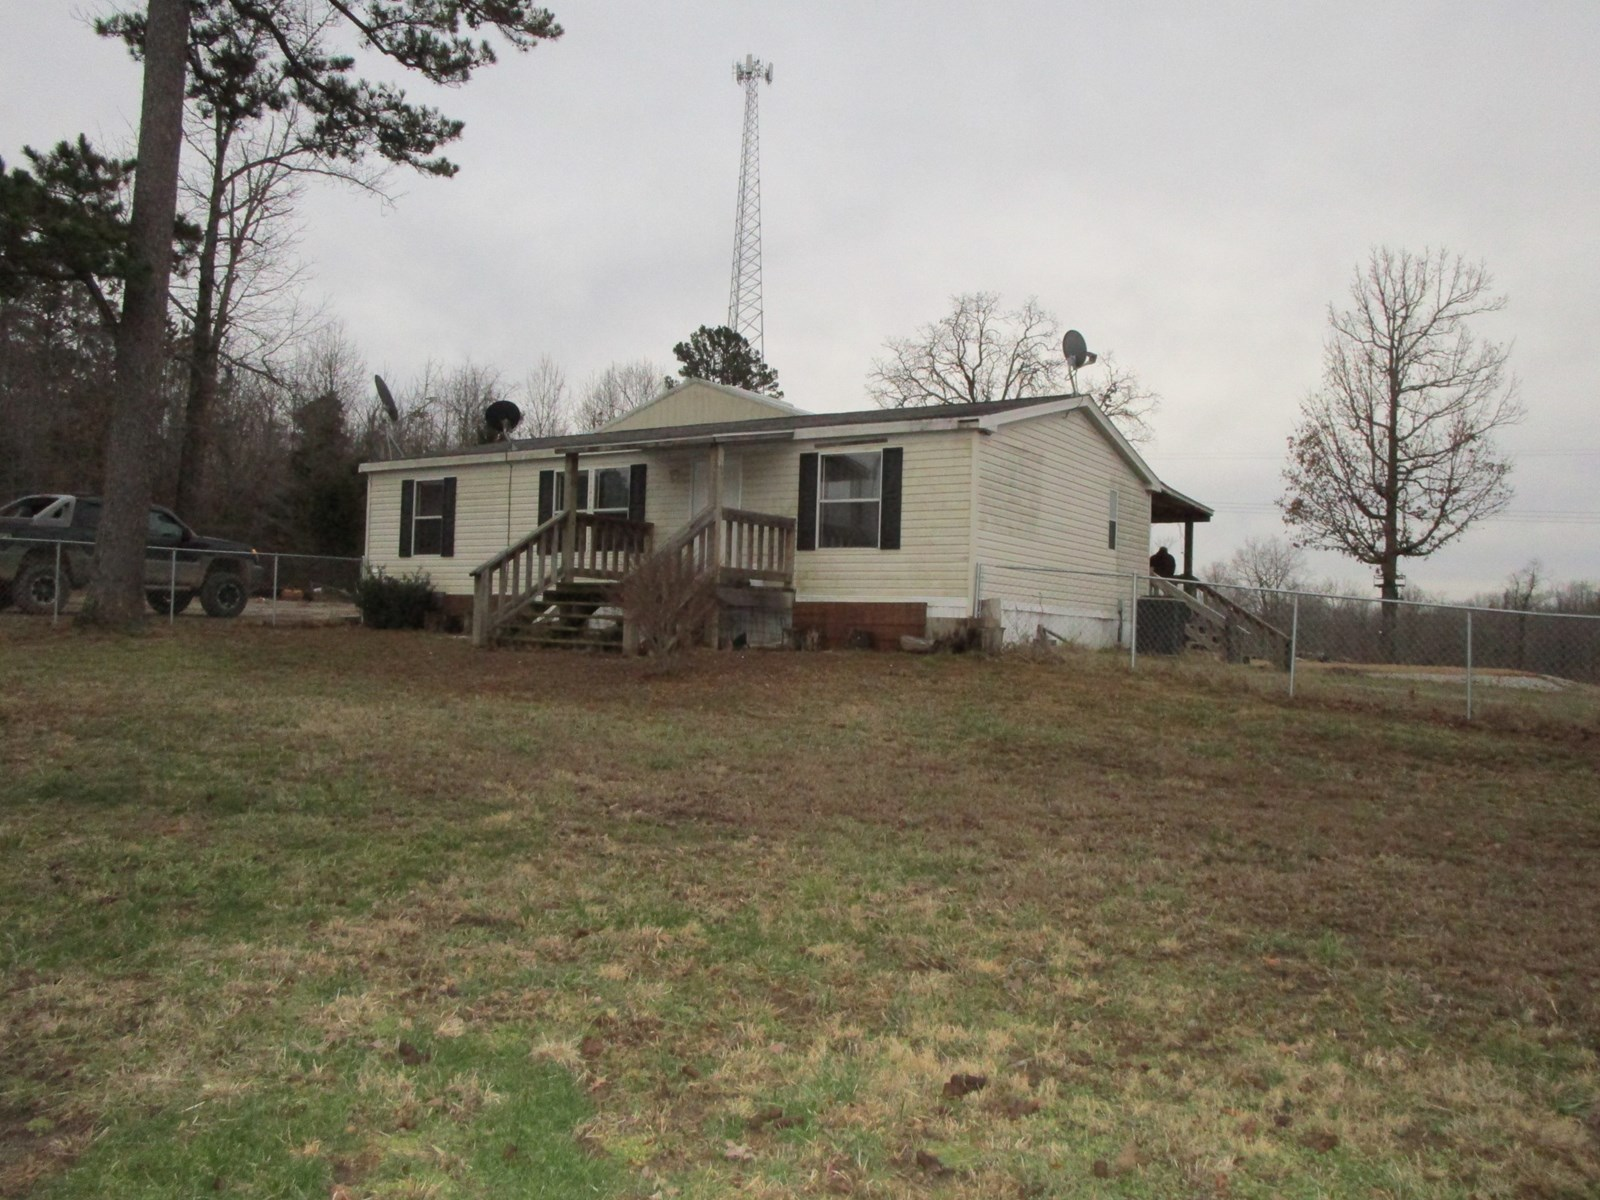 Country Home for Sale - Highway Frontage - Missouri Ozarks